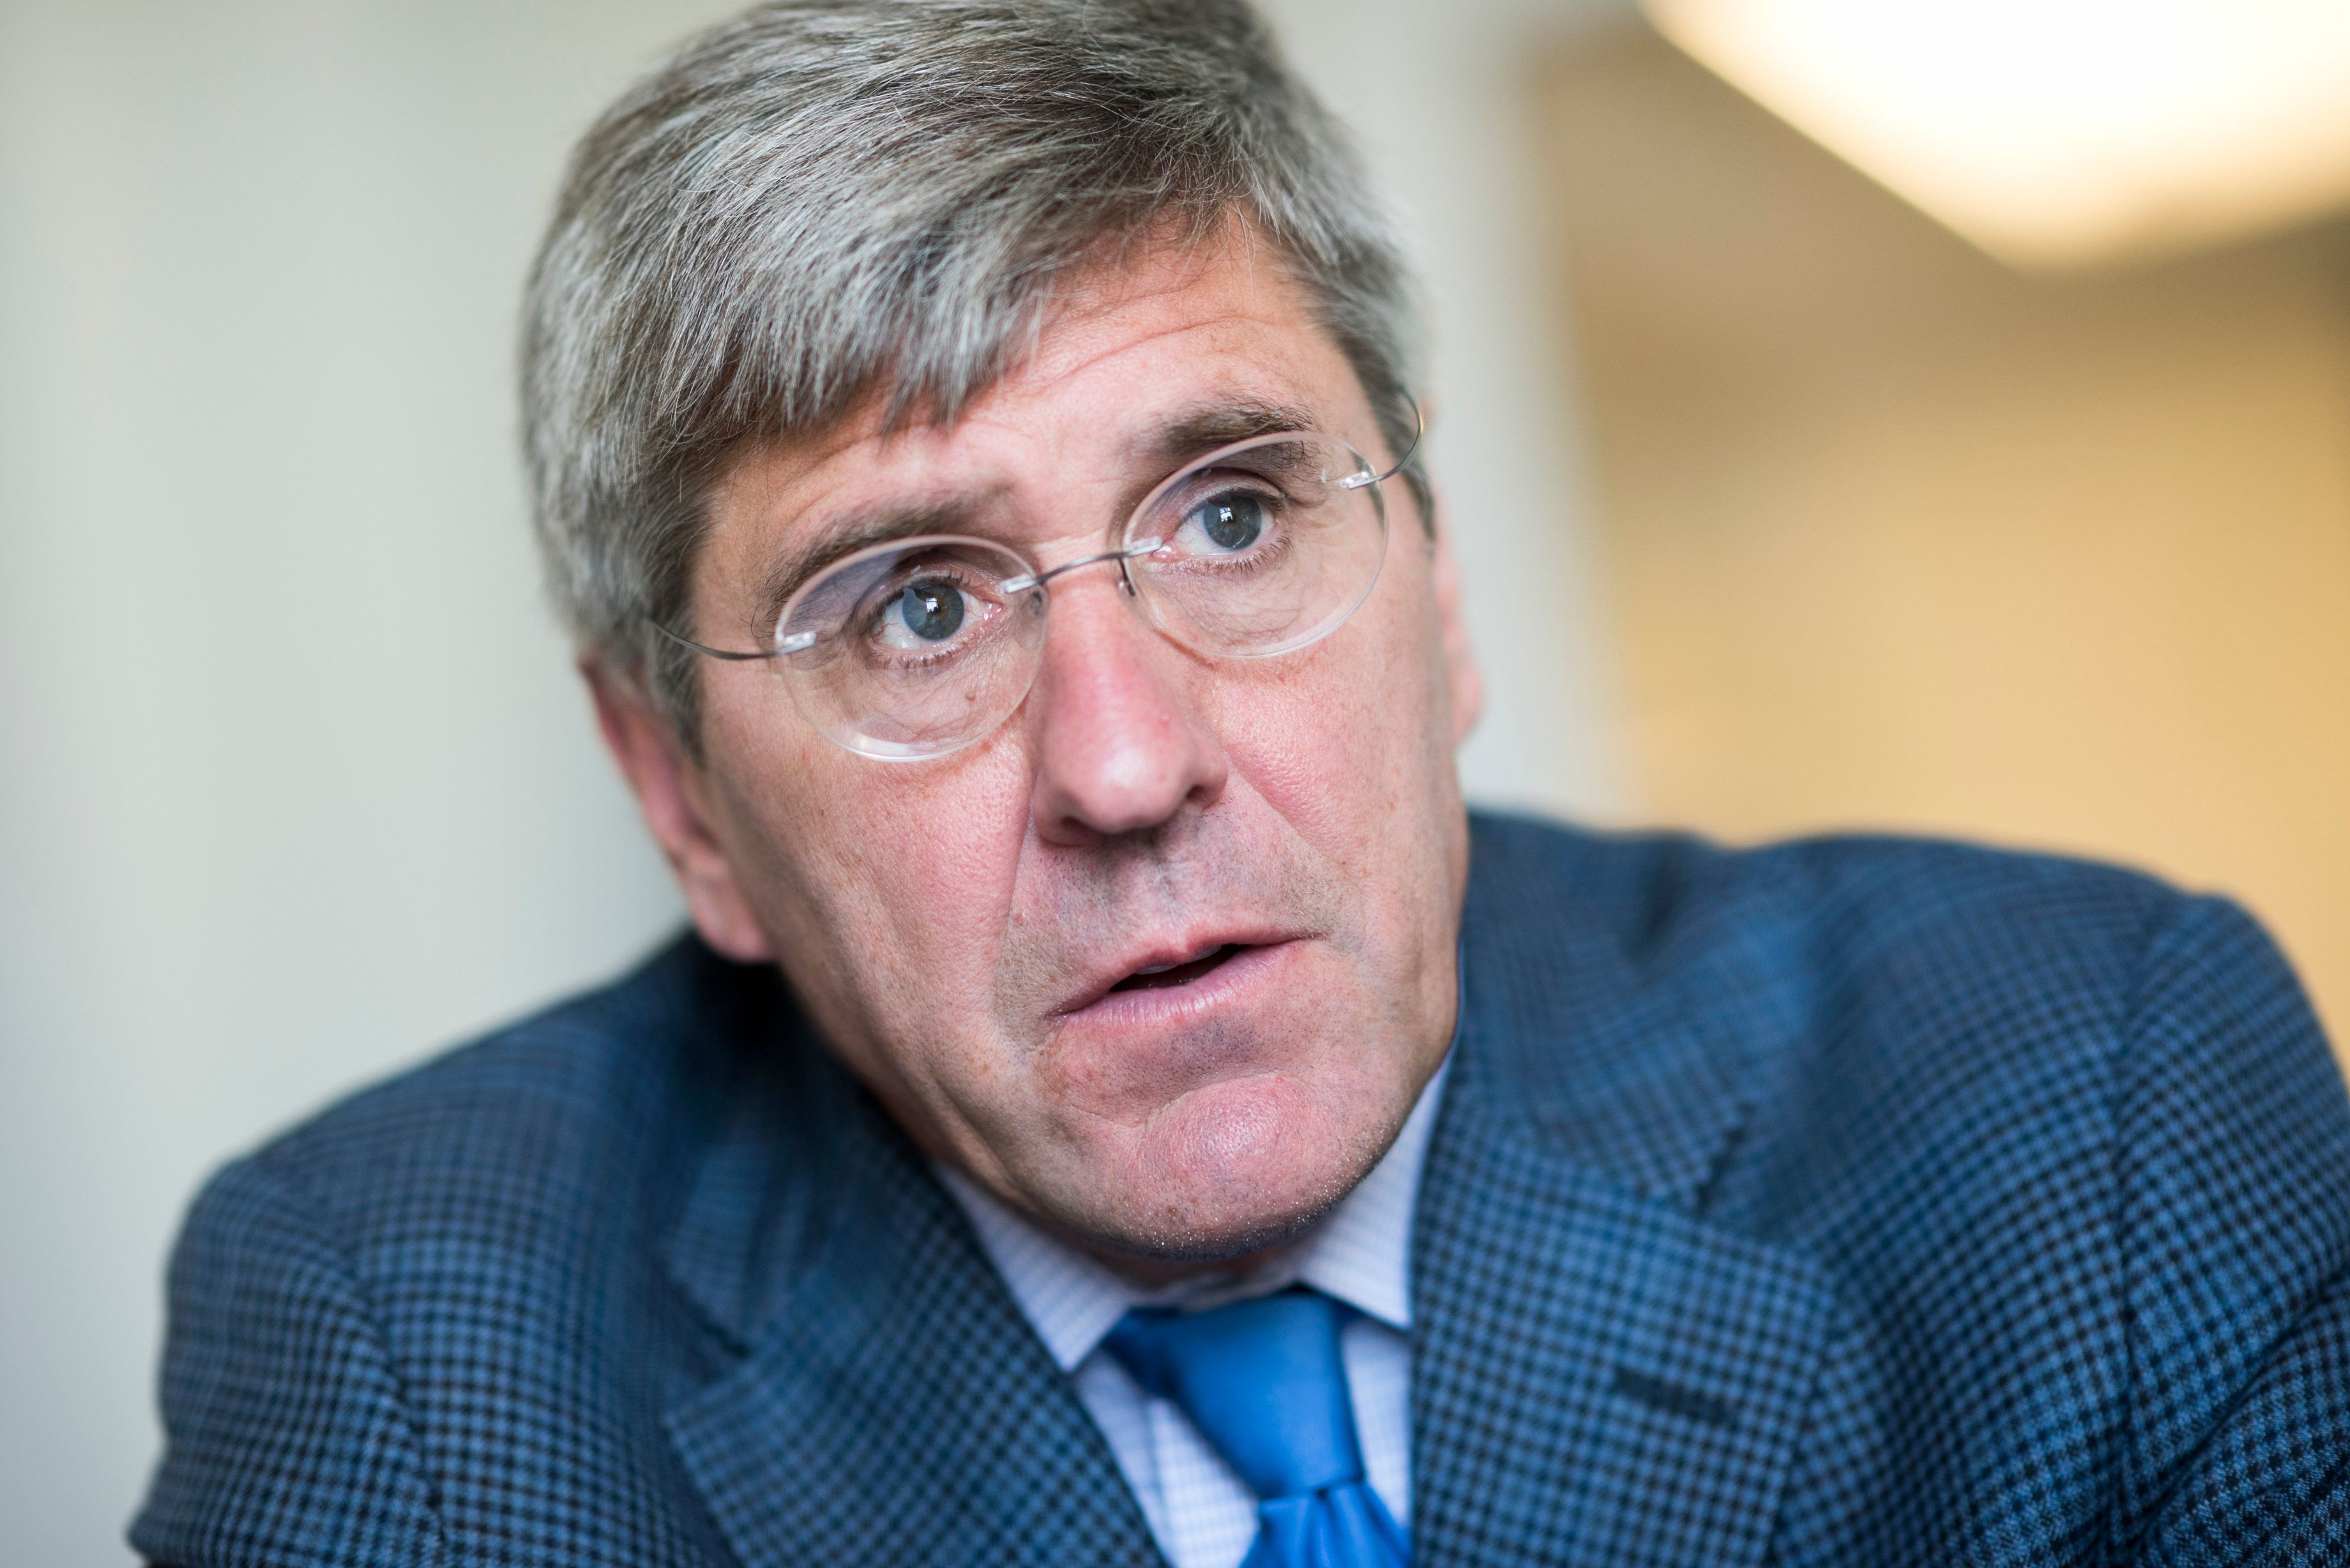 President Donald Trump tweeted on Friday that he will nominate Stephen Moore to serve on the Federal Reserve's Board of Gover